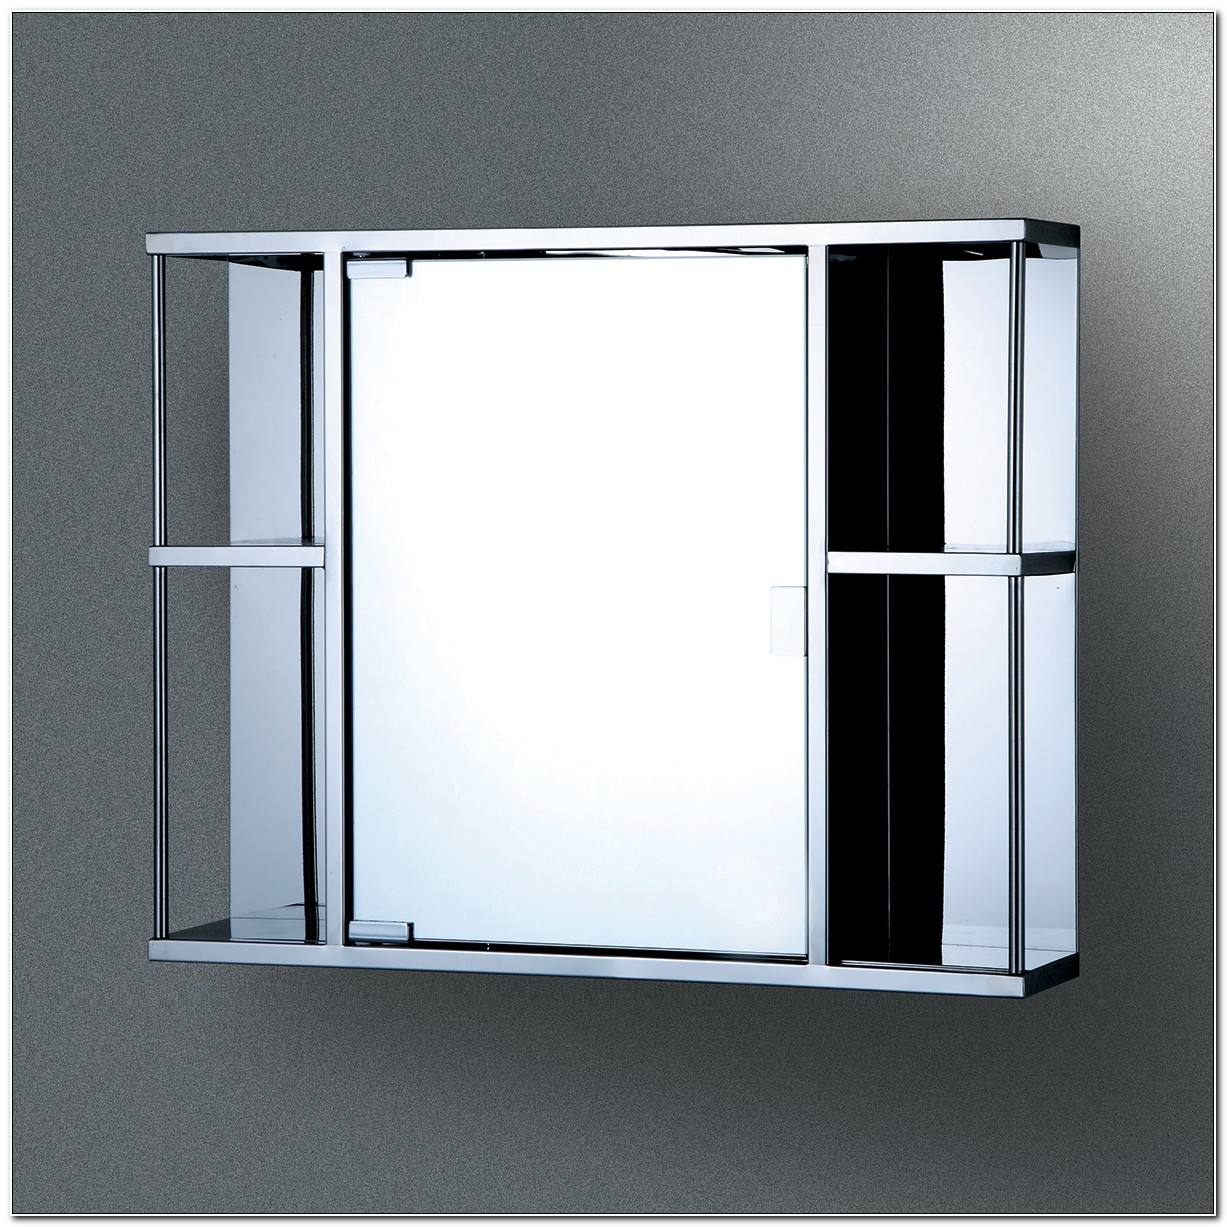 Stainless Steel Bathroom Cabinet India